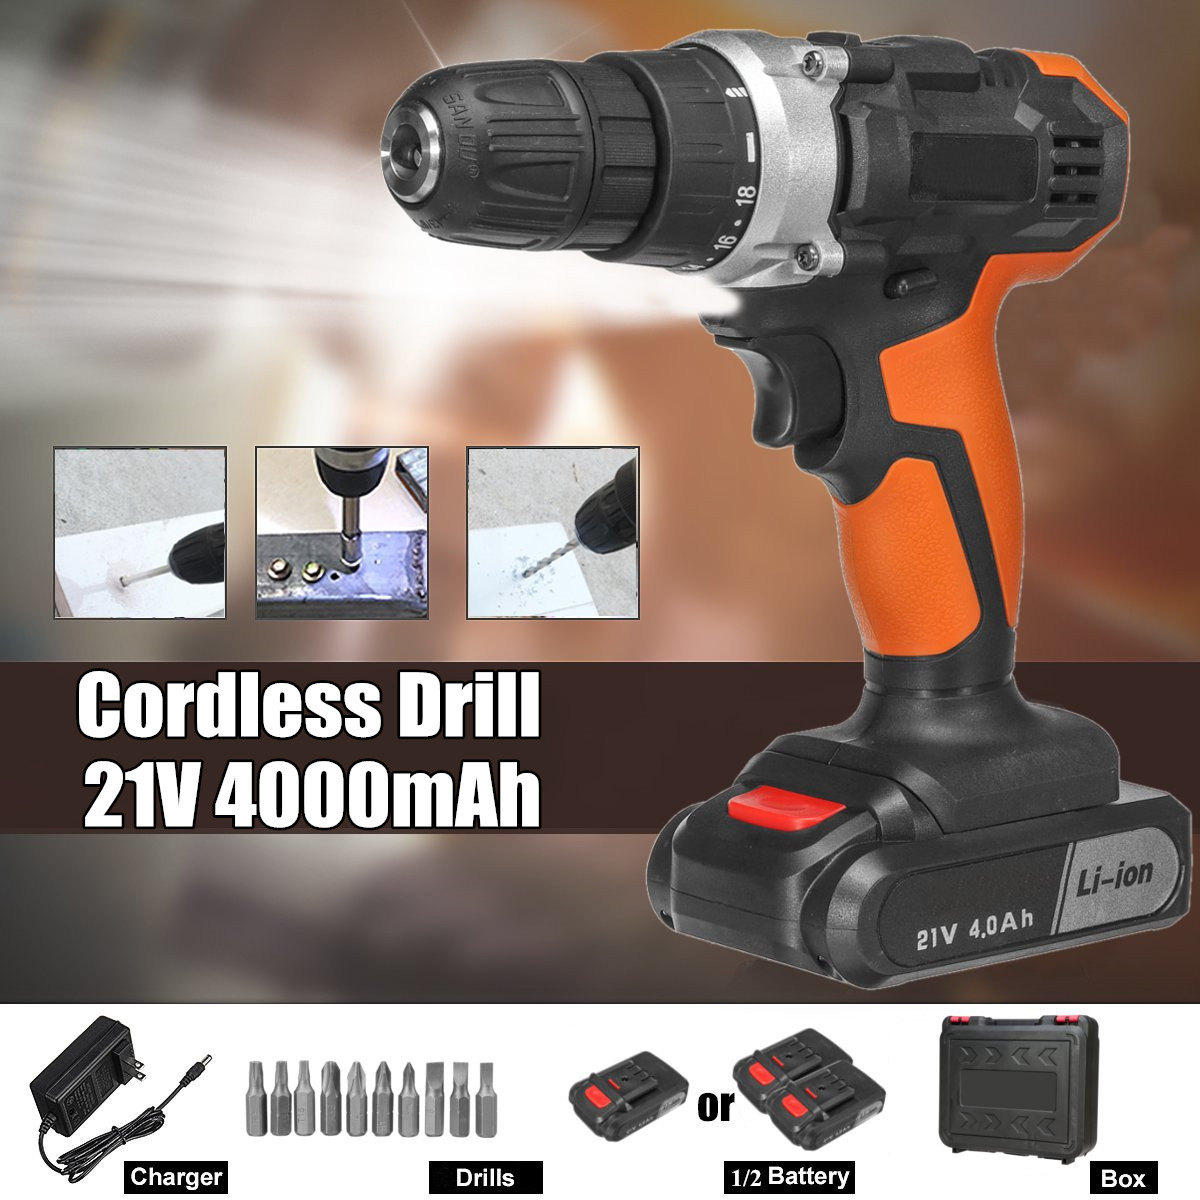 21V Electric Drill Two Speed Lithium Battery Rechargeable Cordless Drill Multi-function Electric Cordless Screwdriver21V Electric Drill Two Speed Lithium Battery Rechargeable Cordless Drill Multi-function Electric Cordless Screwdriver